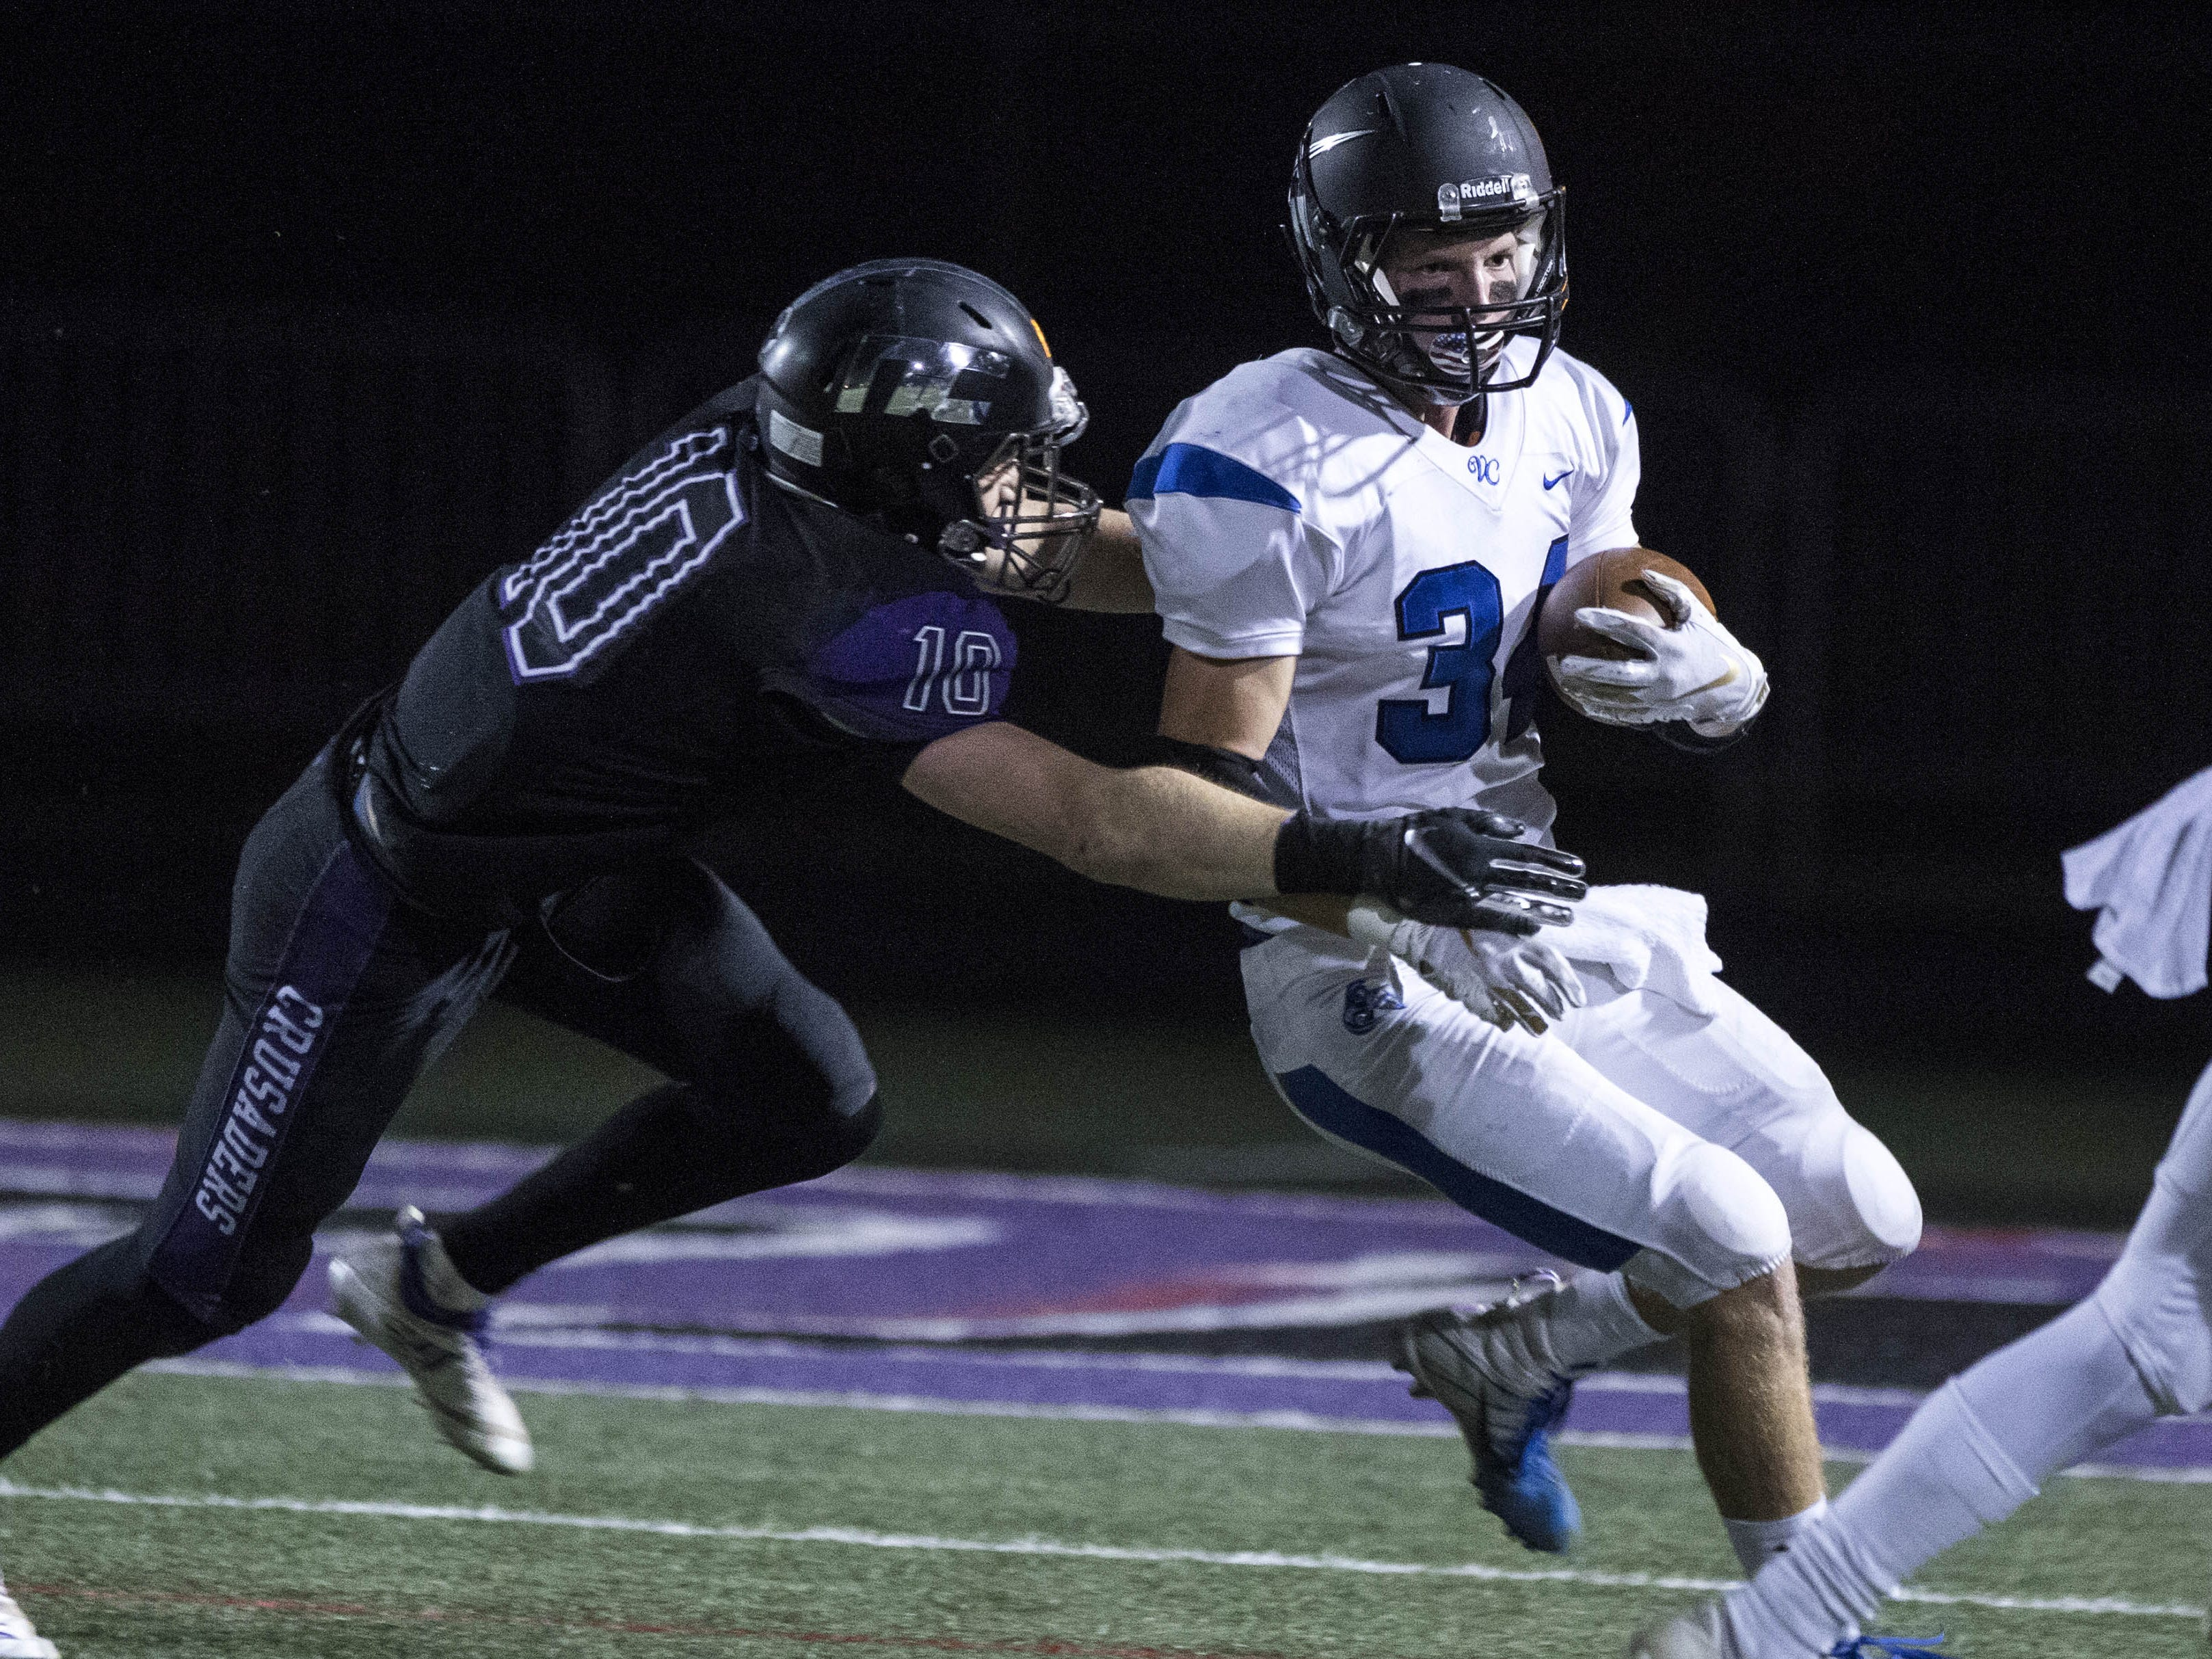 Northwest Christian's Aren Van Hofwegen (10) tackles   Valley Christian's Nathan Dykstra (34) during their game at North Canyon High School in Phoenix  Friday, Nov.17, 2018. #azhsfb